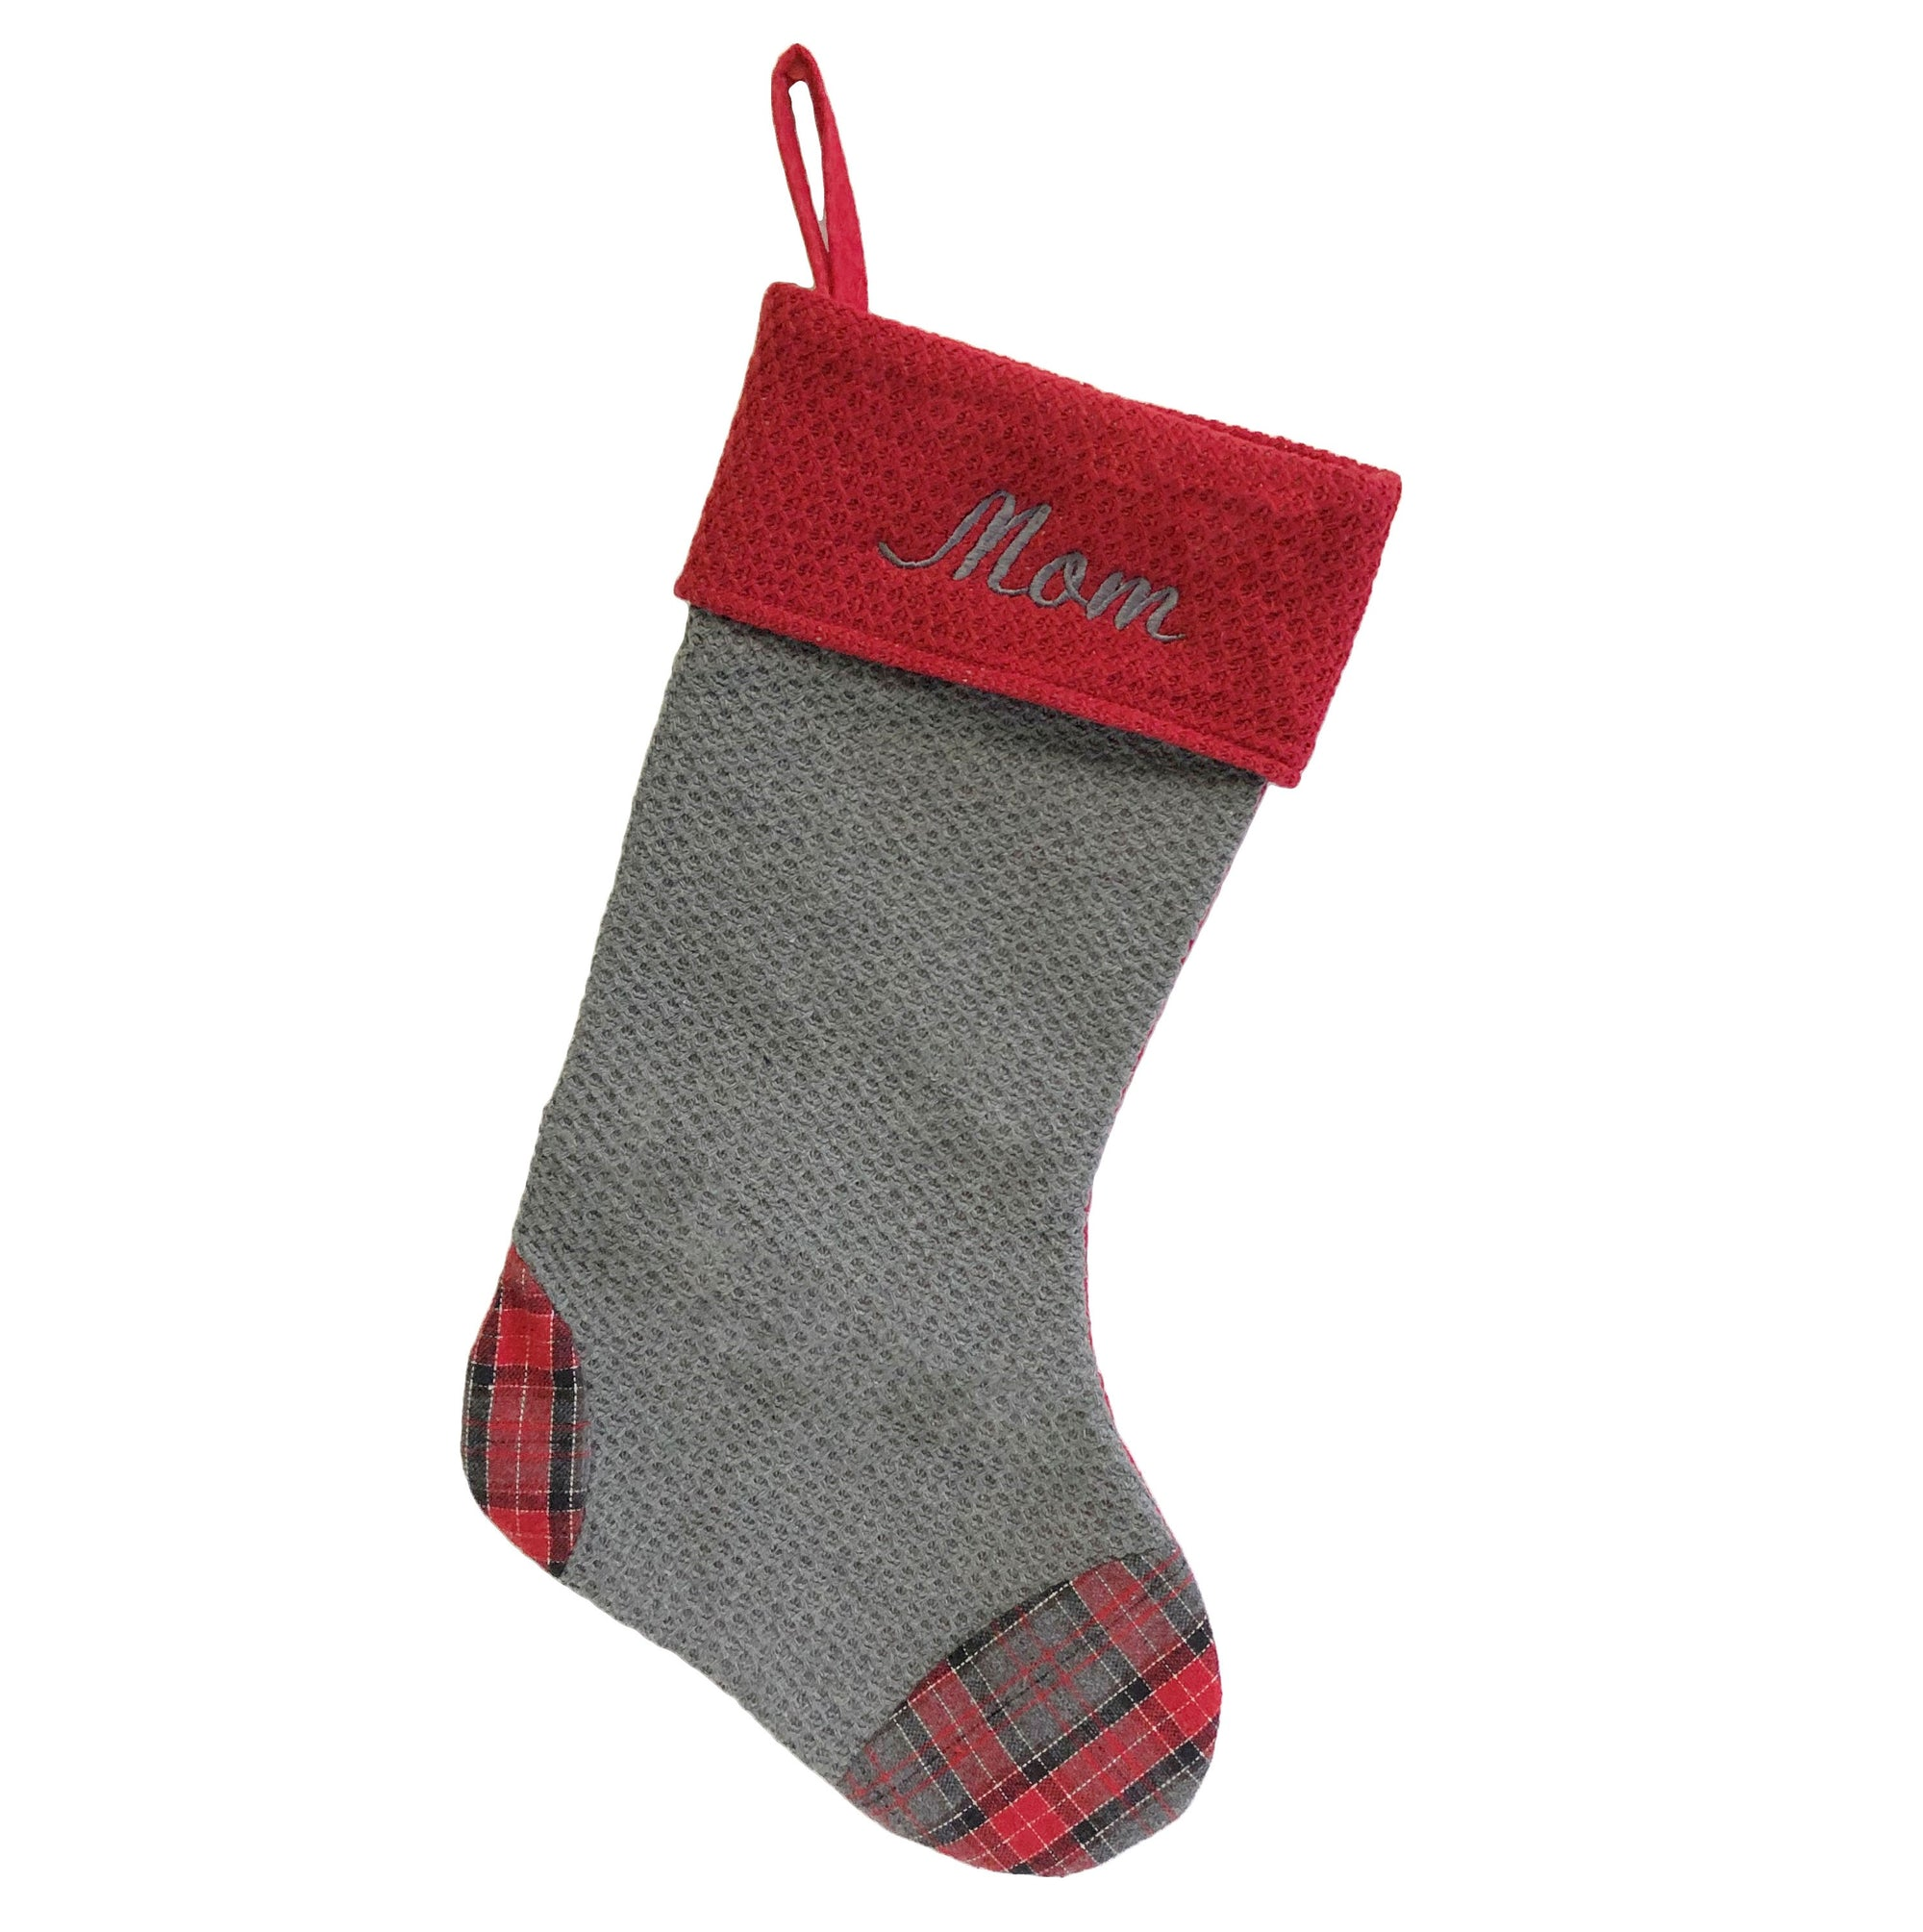 Grey Knit Stocking